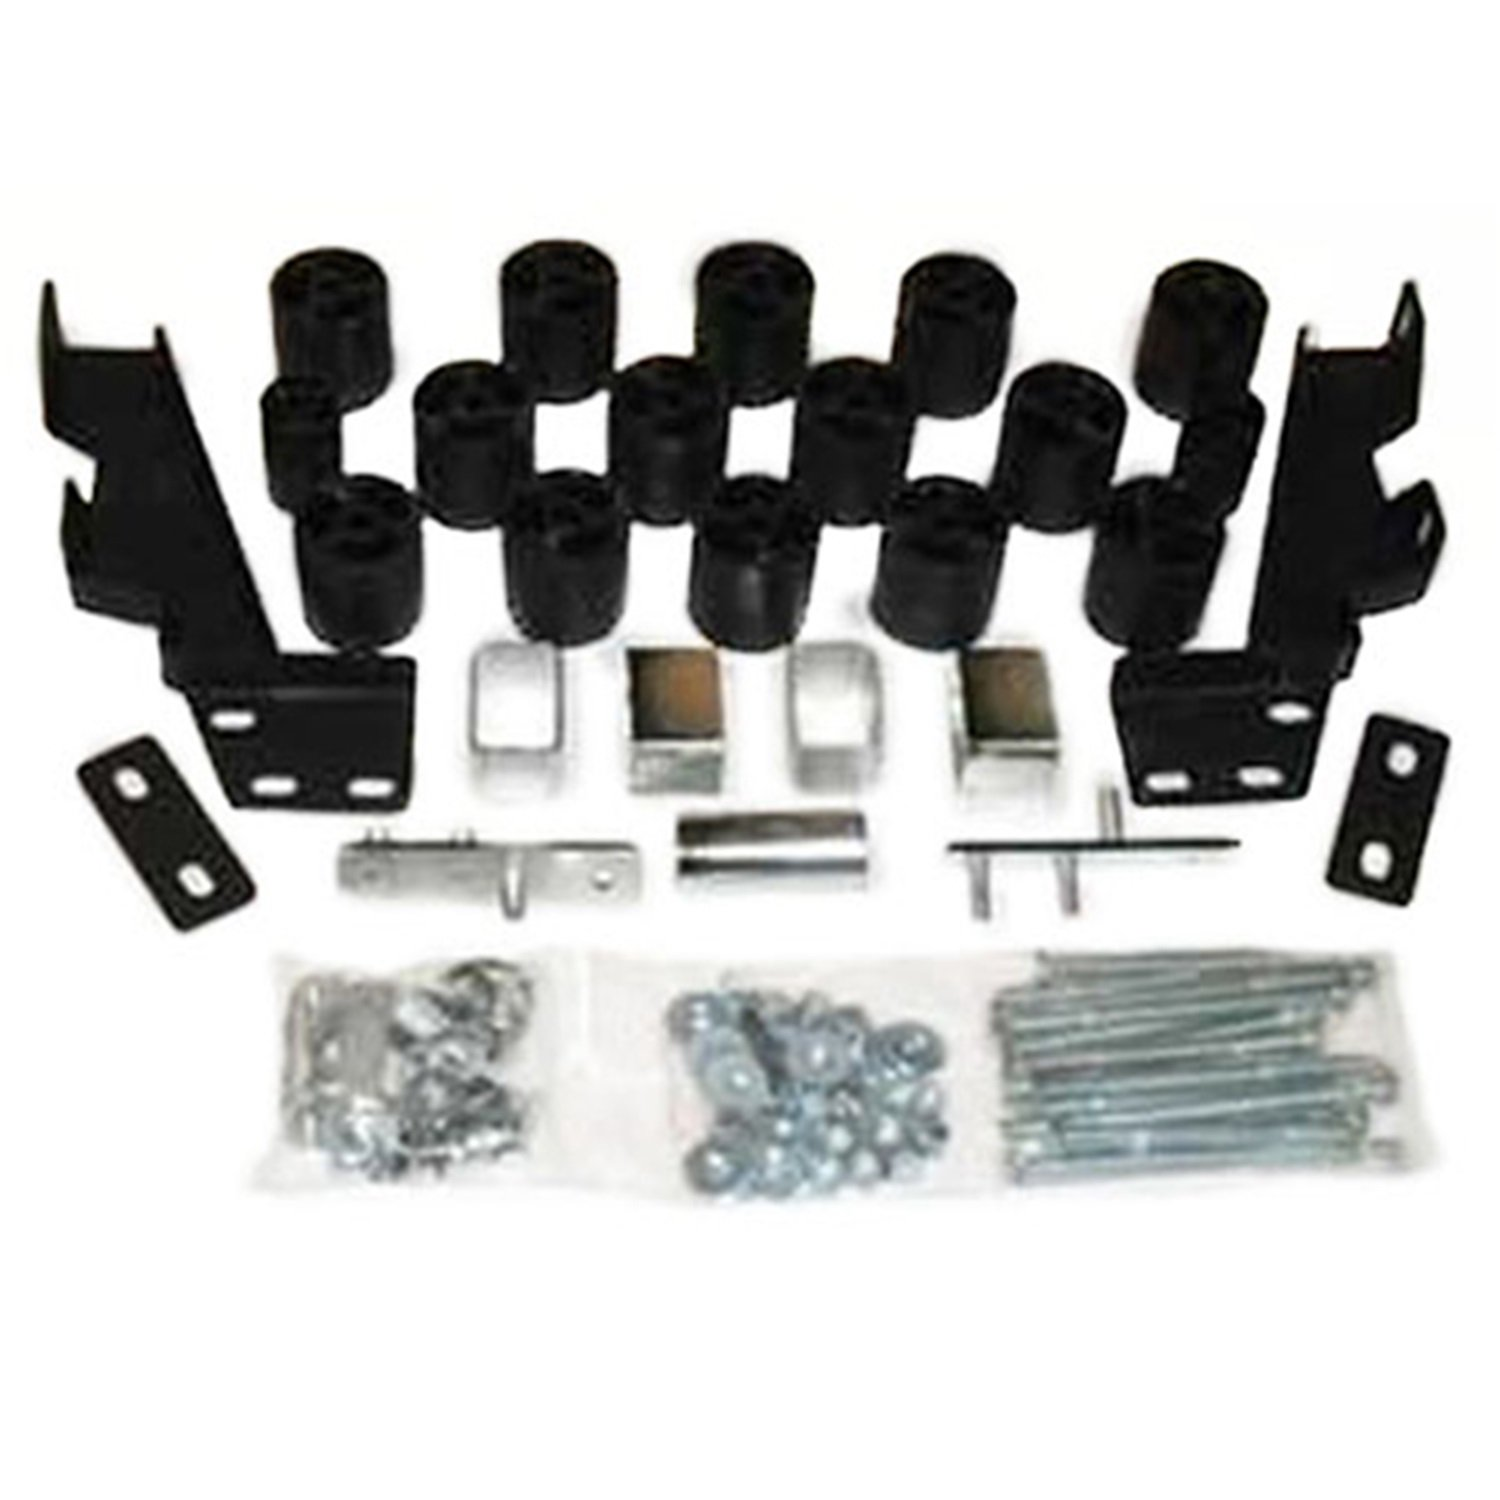 Performance Accessories, Dodge Ram Pickup Gas Sport Only, (Except 2000 Auto Trans) 3'' Body Lift Kit, fits 1999 to 2001, PA60013, Made in America